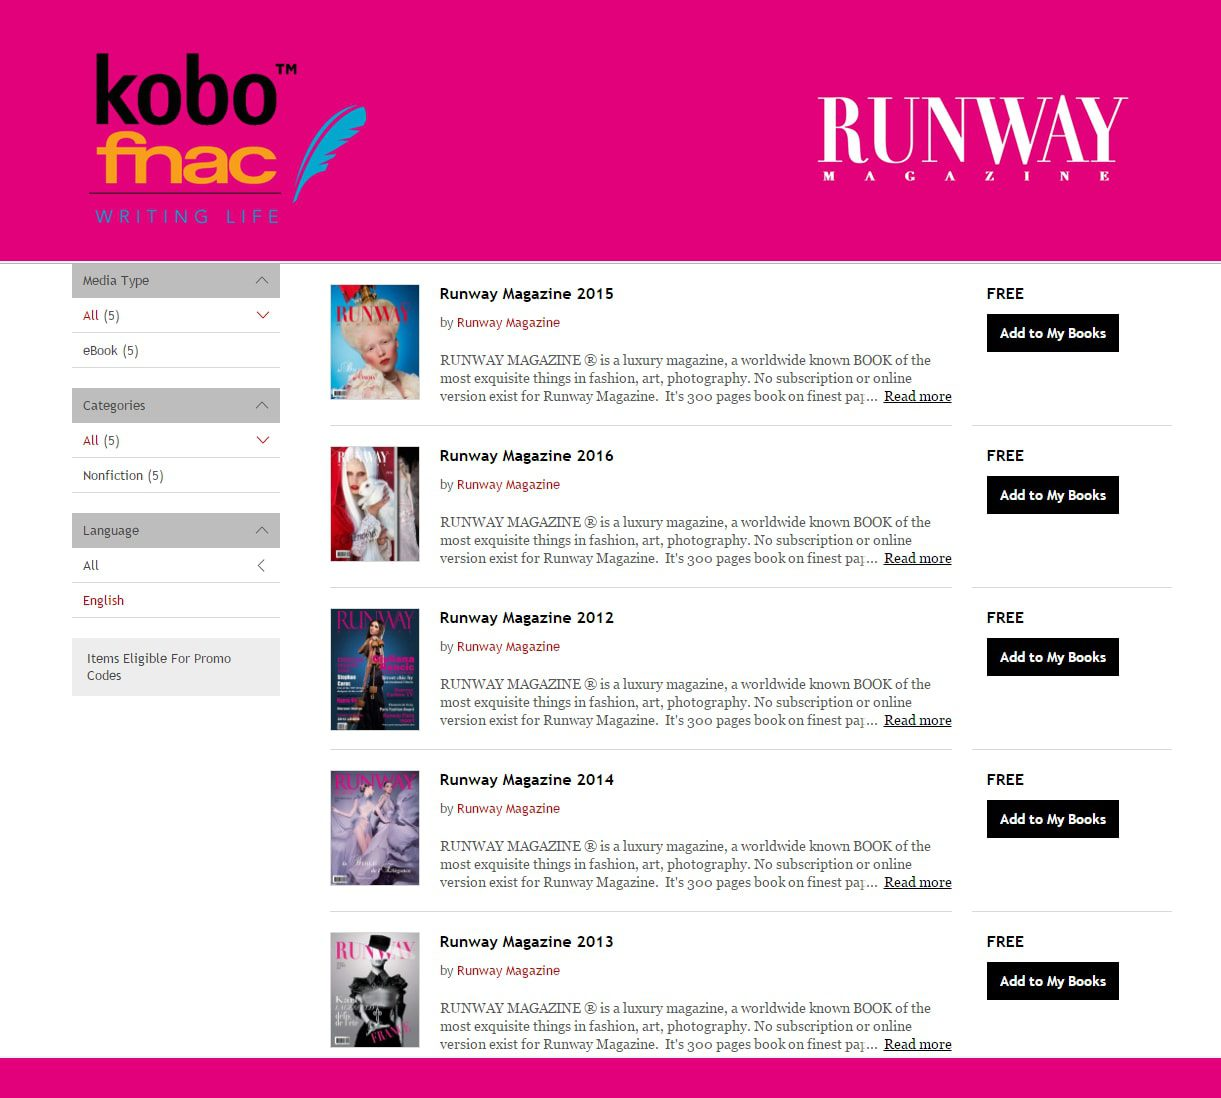 Fnac-Kobo-Runway-Magazine-Eleonora-de-Gray-digital-teaser Runway Magazine Digital issues